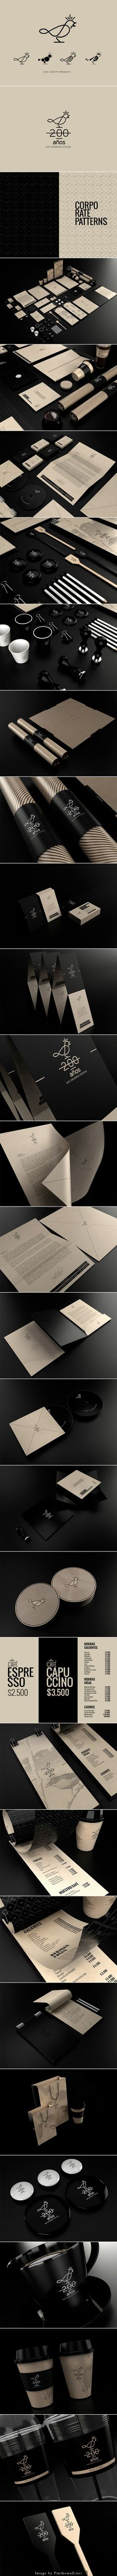 200 Years Coffee - Logo and Identity by David Espinosa IDS PD